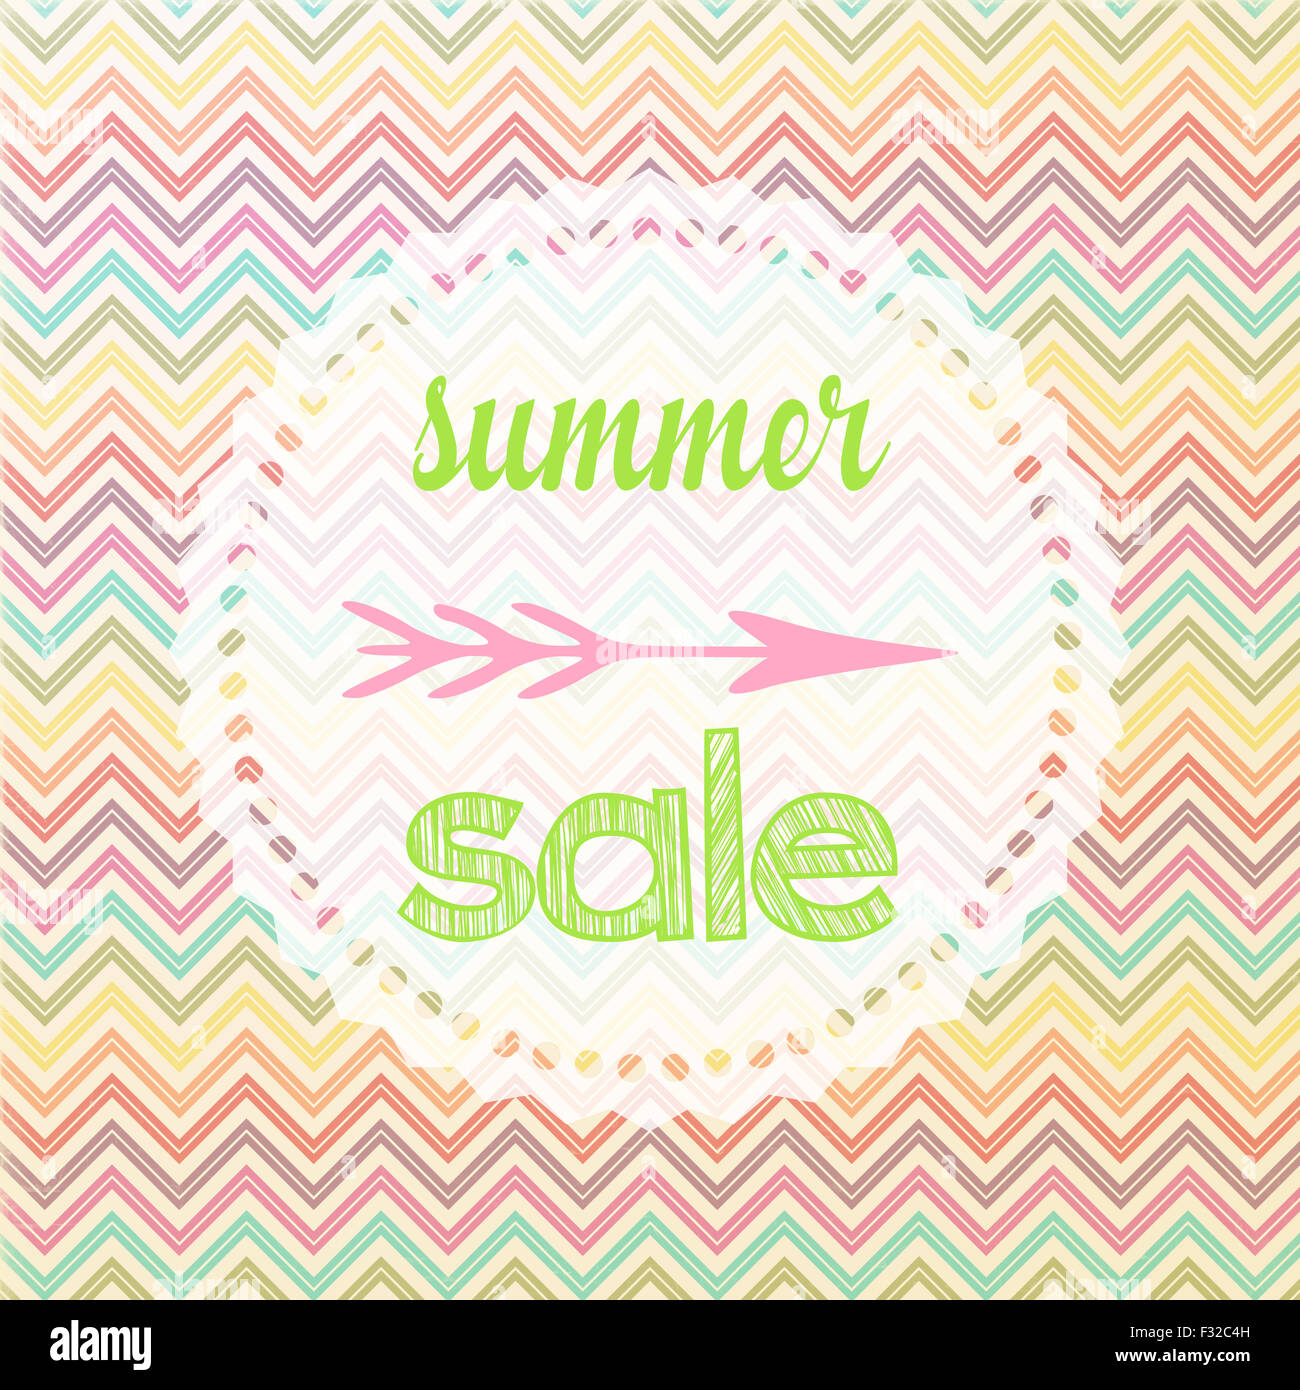 Illustration of a summer sale sign with chevron pattern